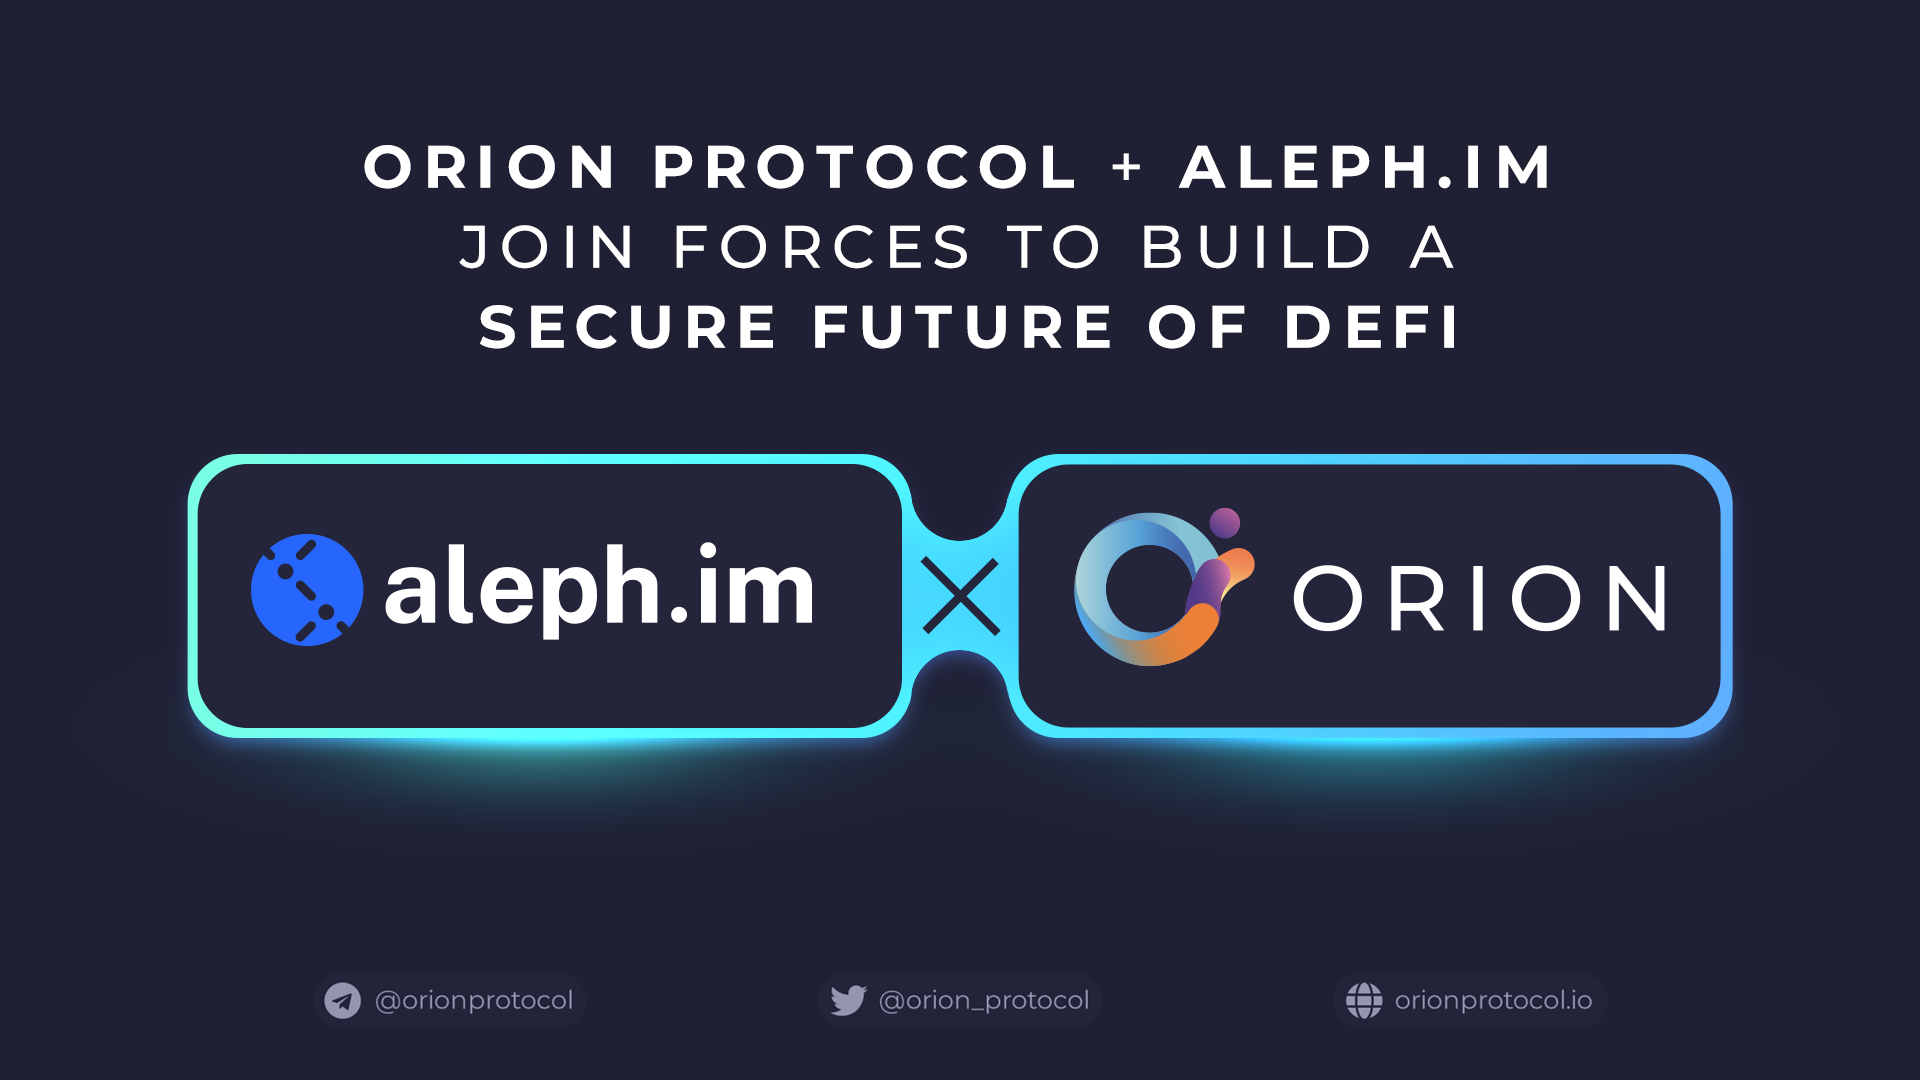 Orion Protocol + aleph.im join forces to build a secure future of DeFi